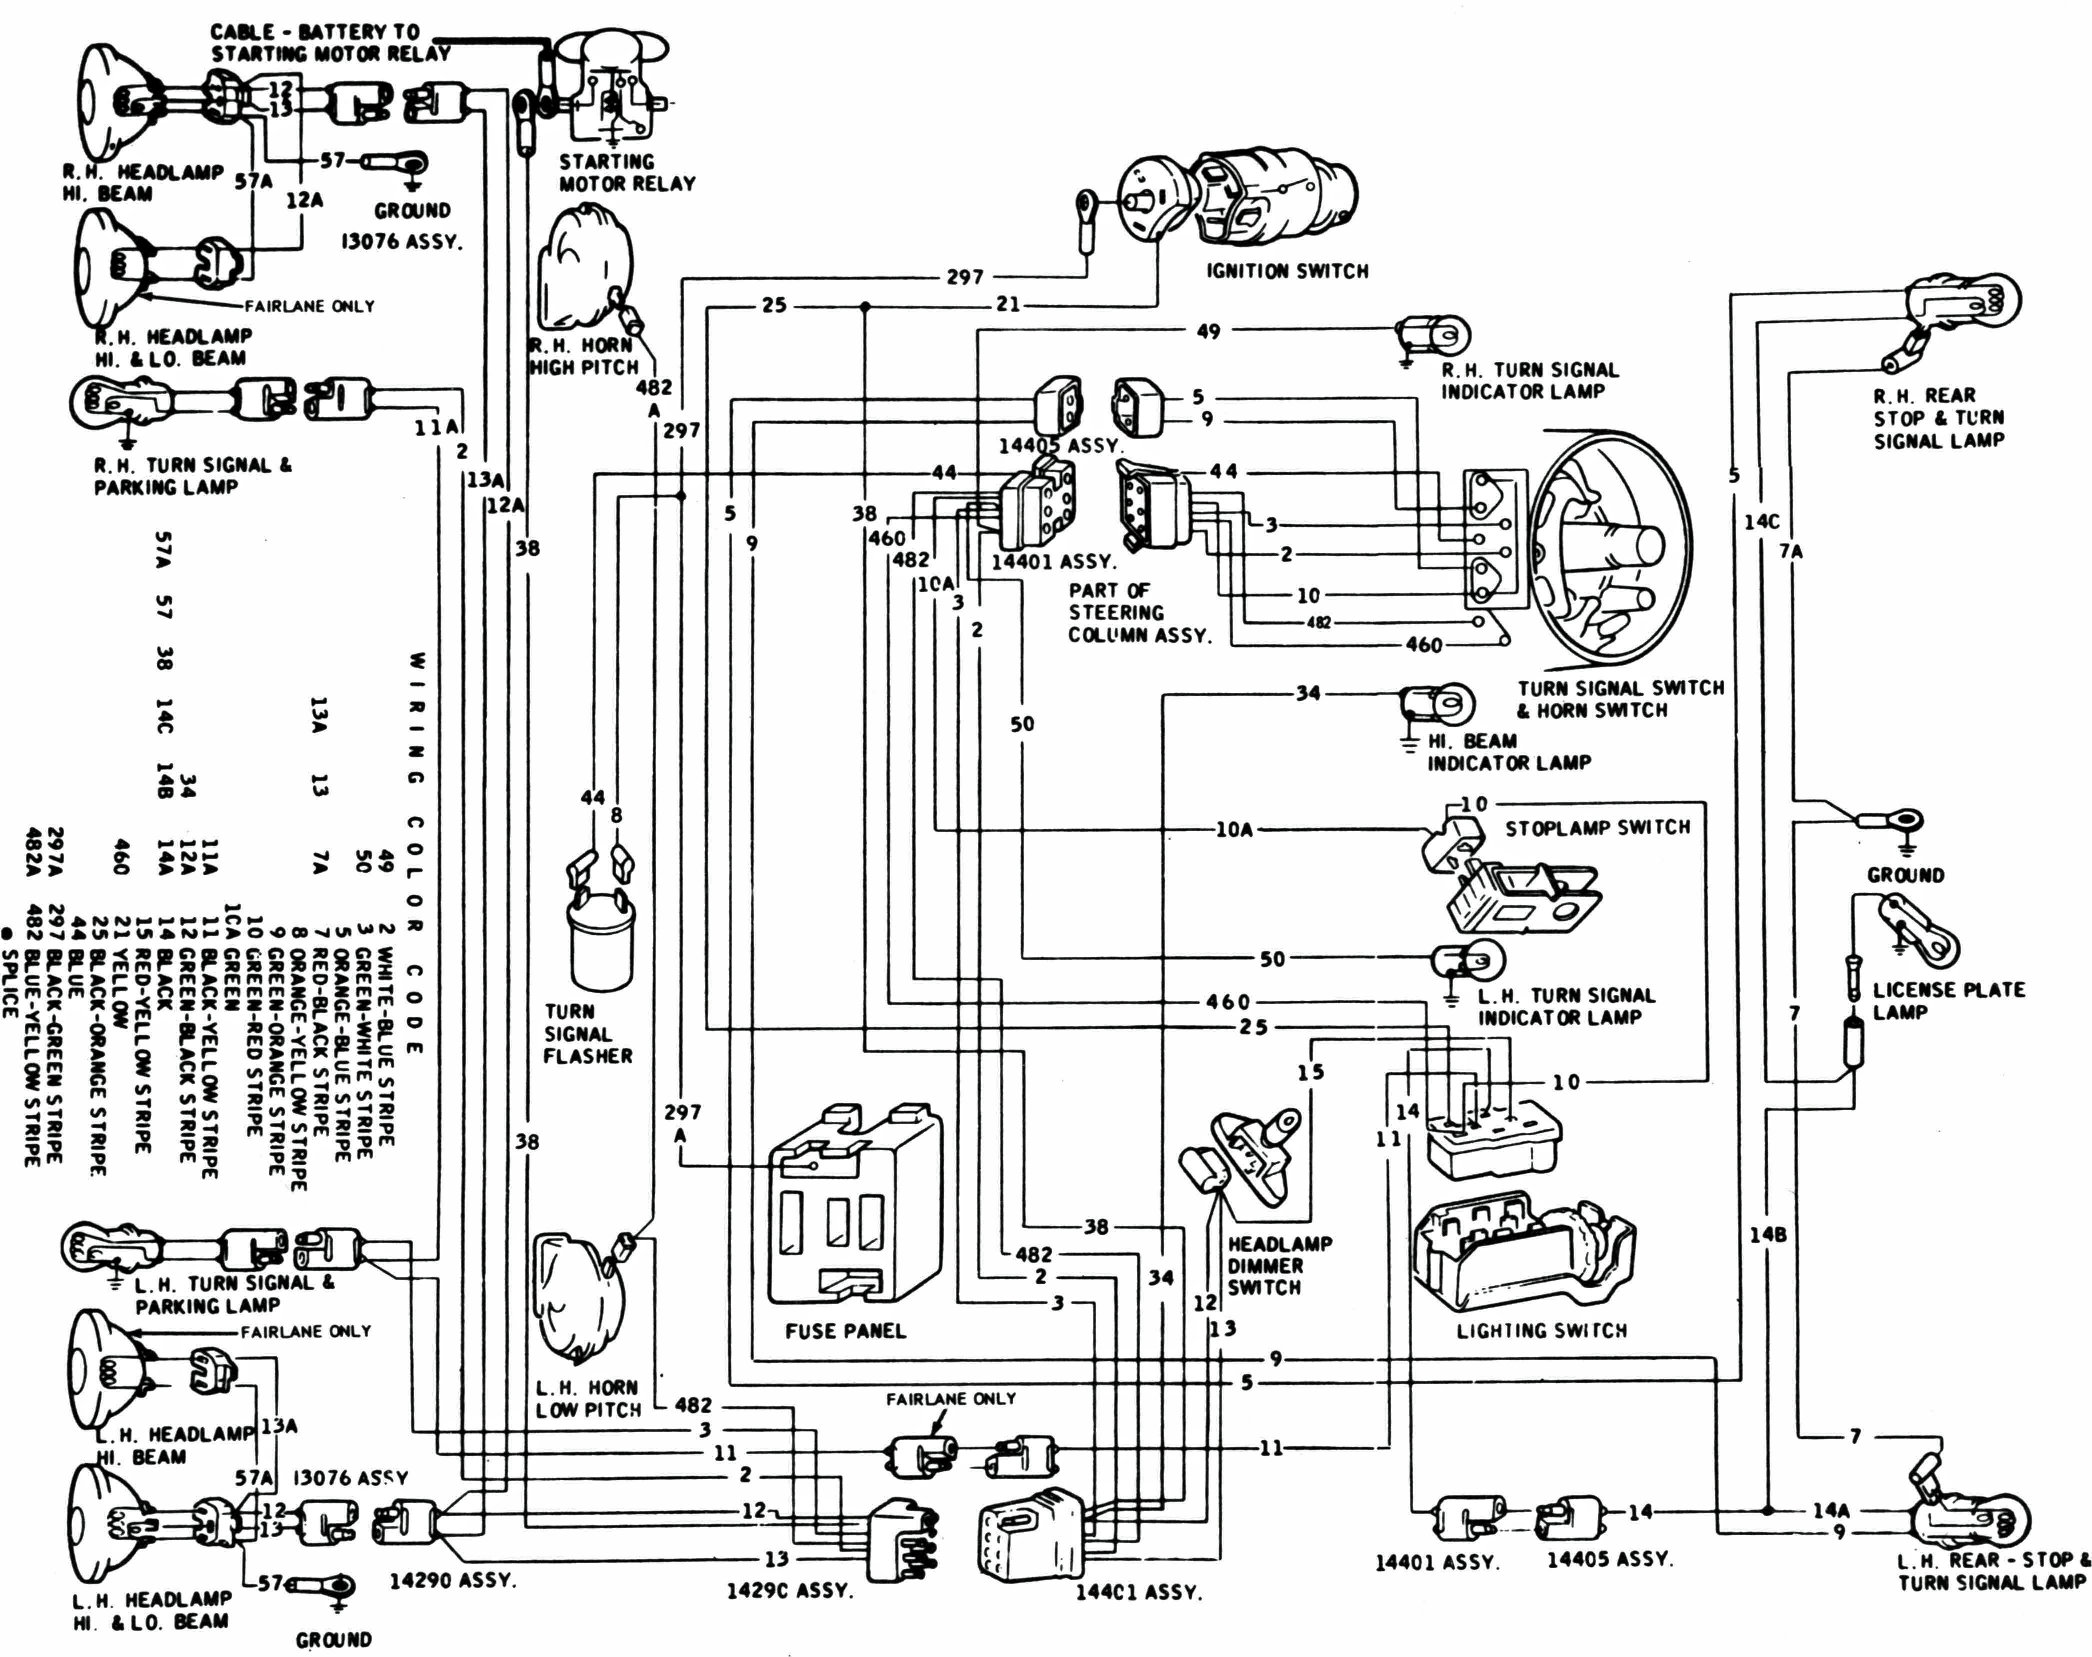 Image Ford Wiring Diagram Ford Turn Signal Wiring Harness Online Wiring Diagram Rh 2 Code3e Co 1967 Ford F 100 Turn S Electrical Diagram Diagram Design Diagram